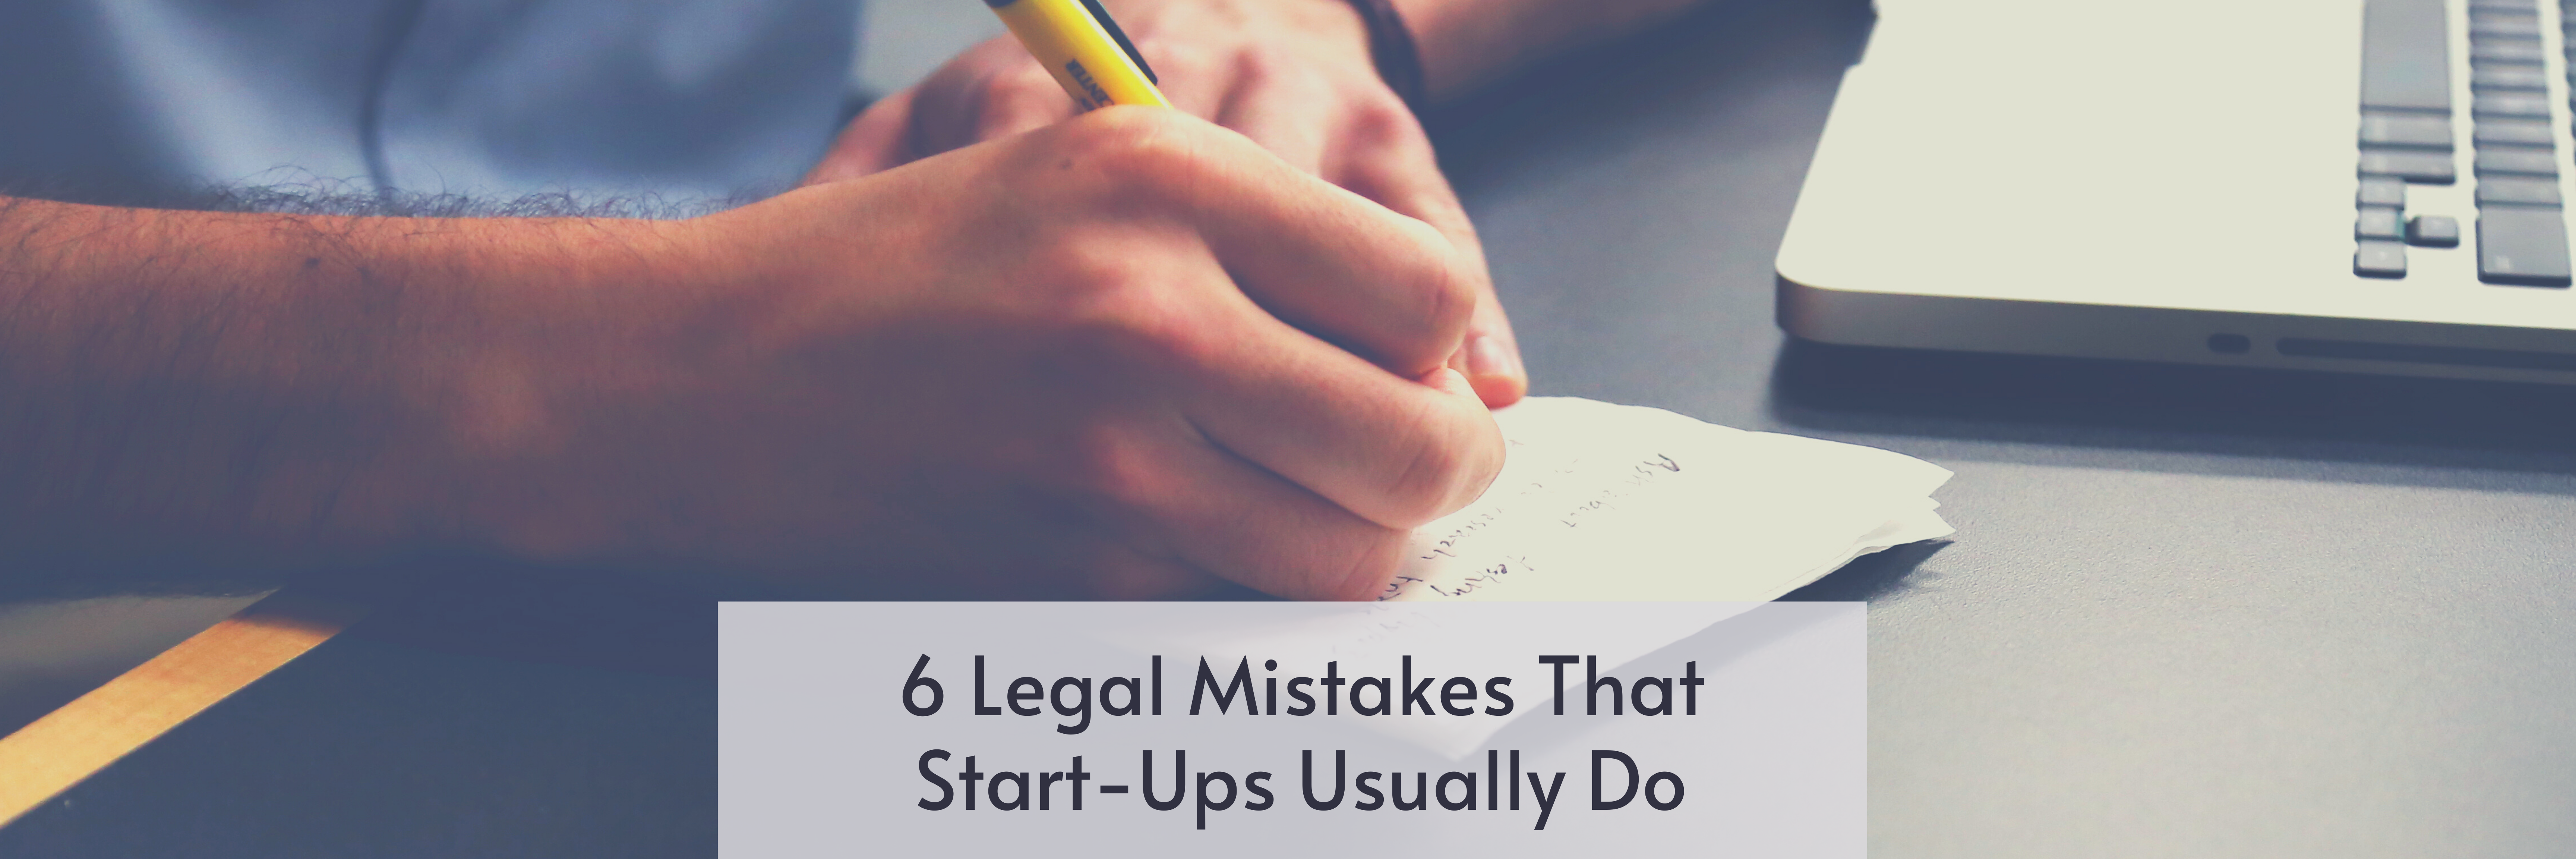 6 Legal mistakes that start-ups usually do